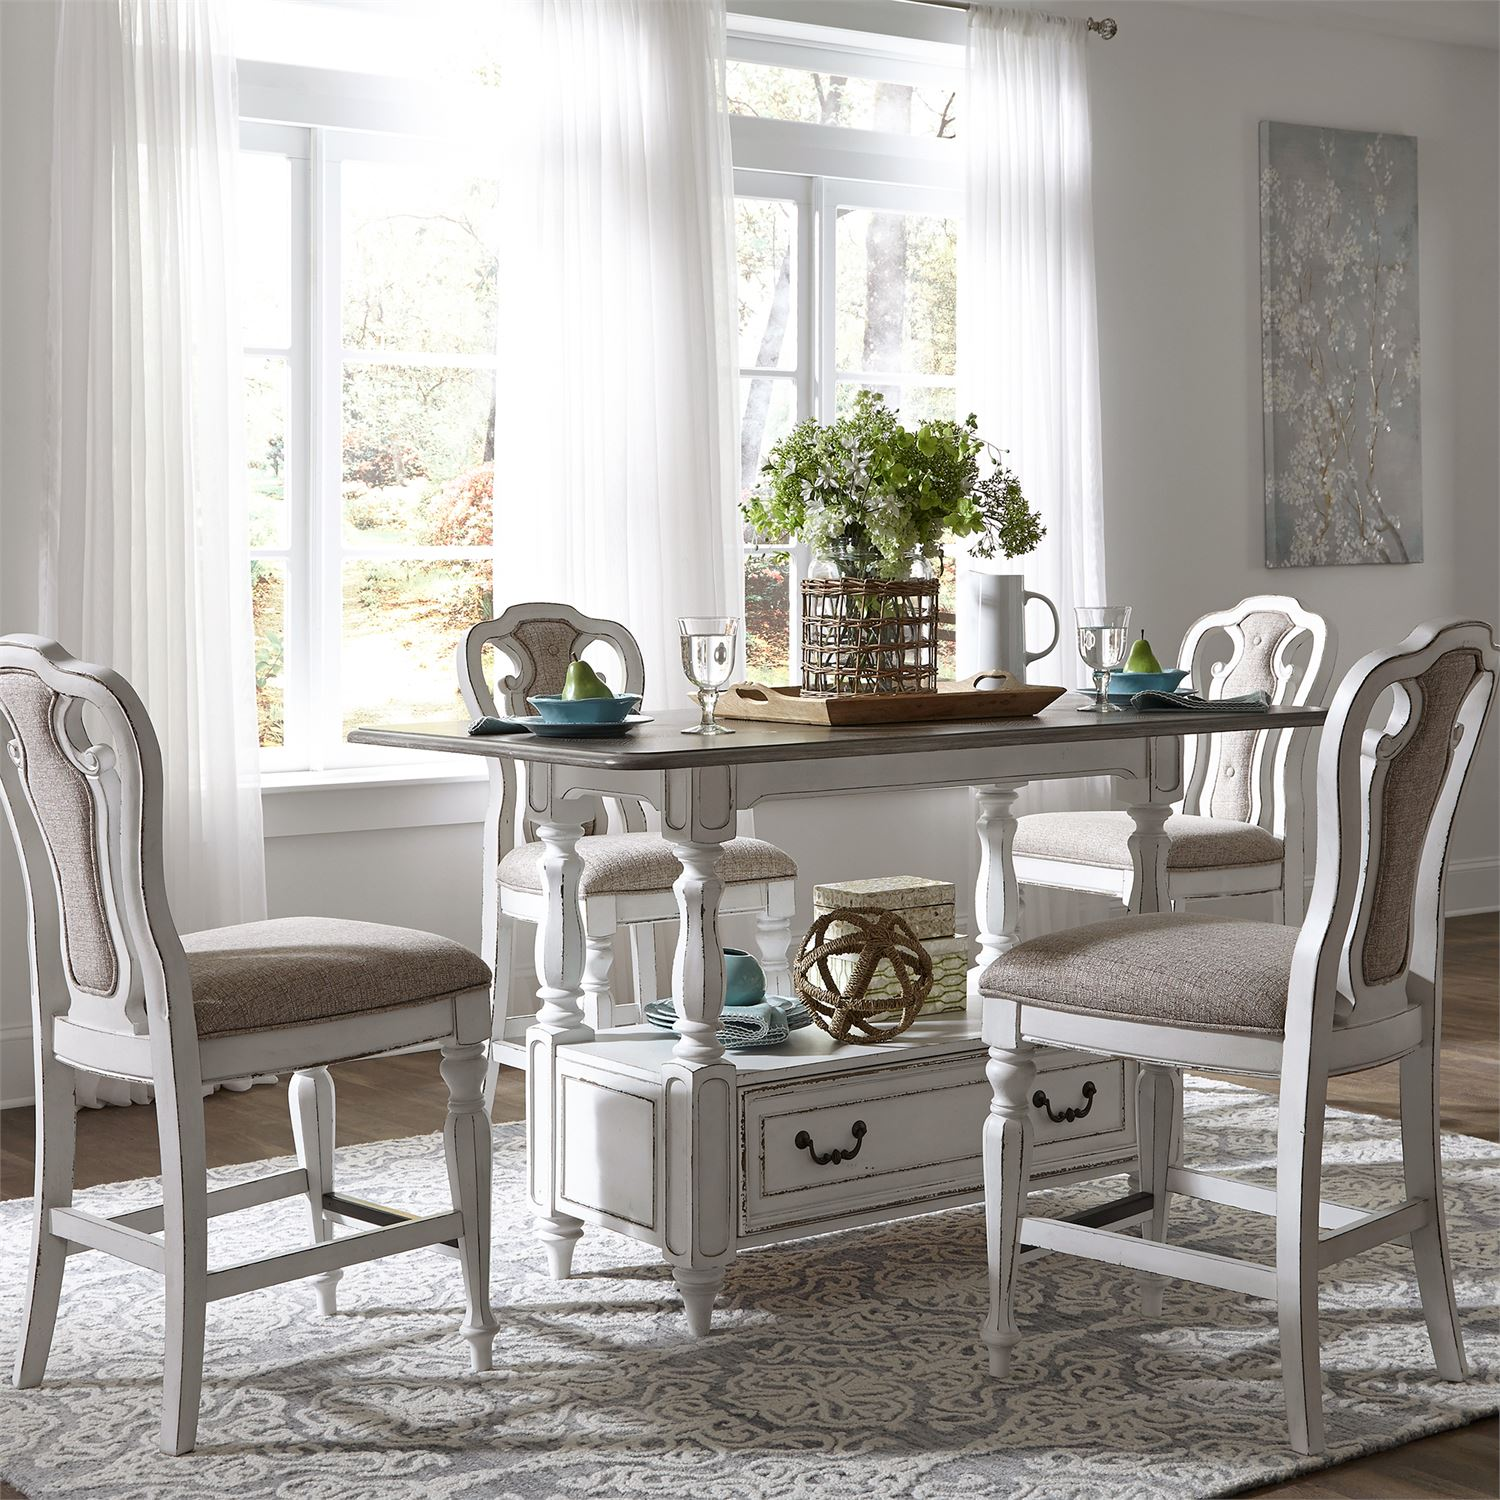 Magnolia Manor Antique White Rectangular Counter Height Dining Room Set  LIB 244 GT3660